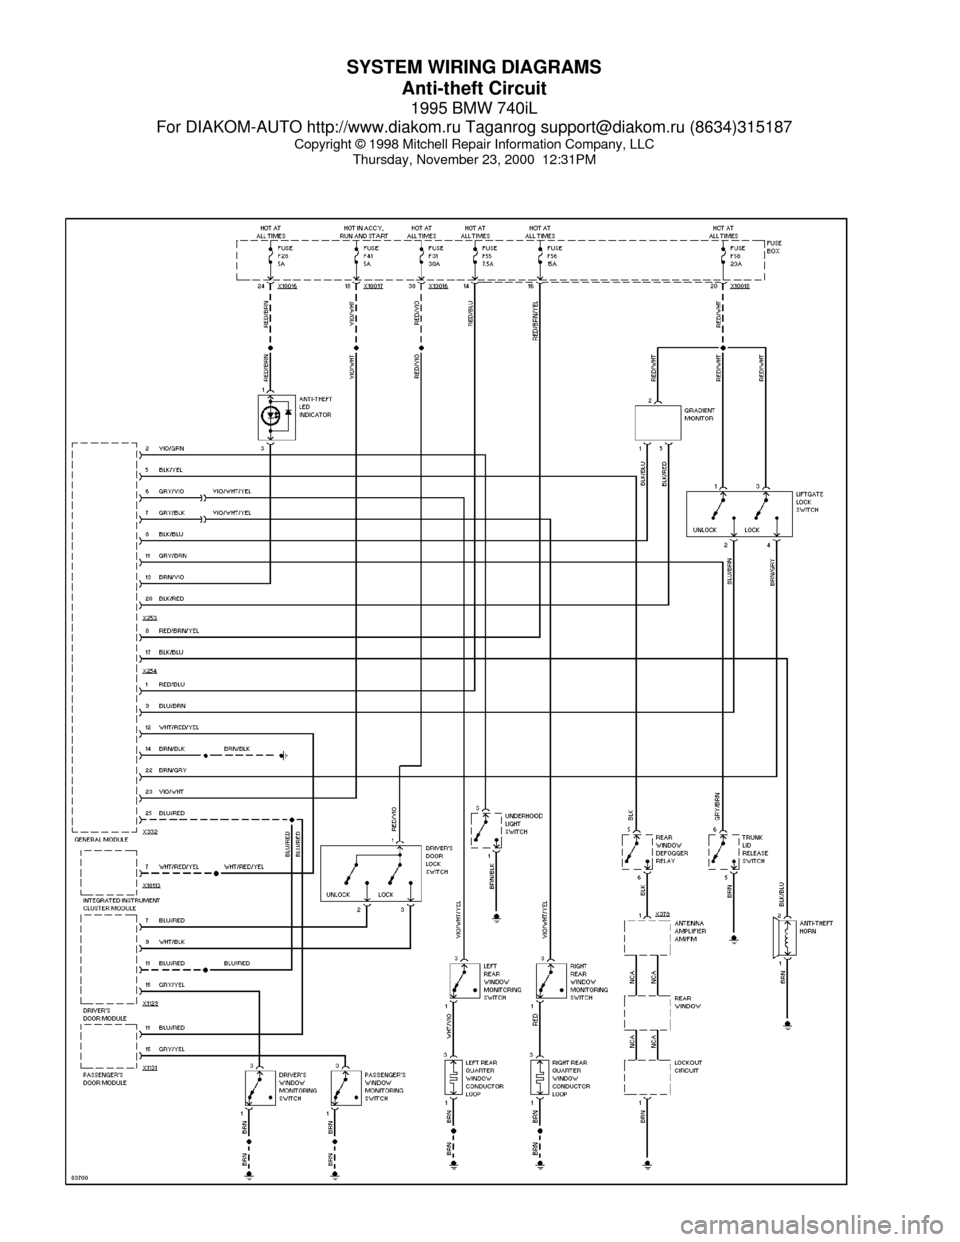 bmw 740il 1995 e38 system wiring diagrams (60 pages)  car manuals online